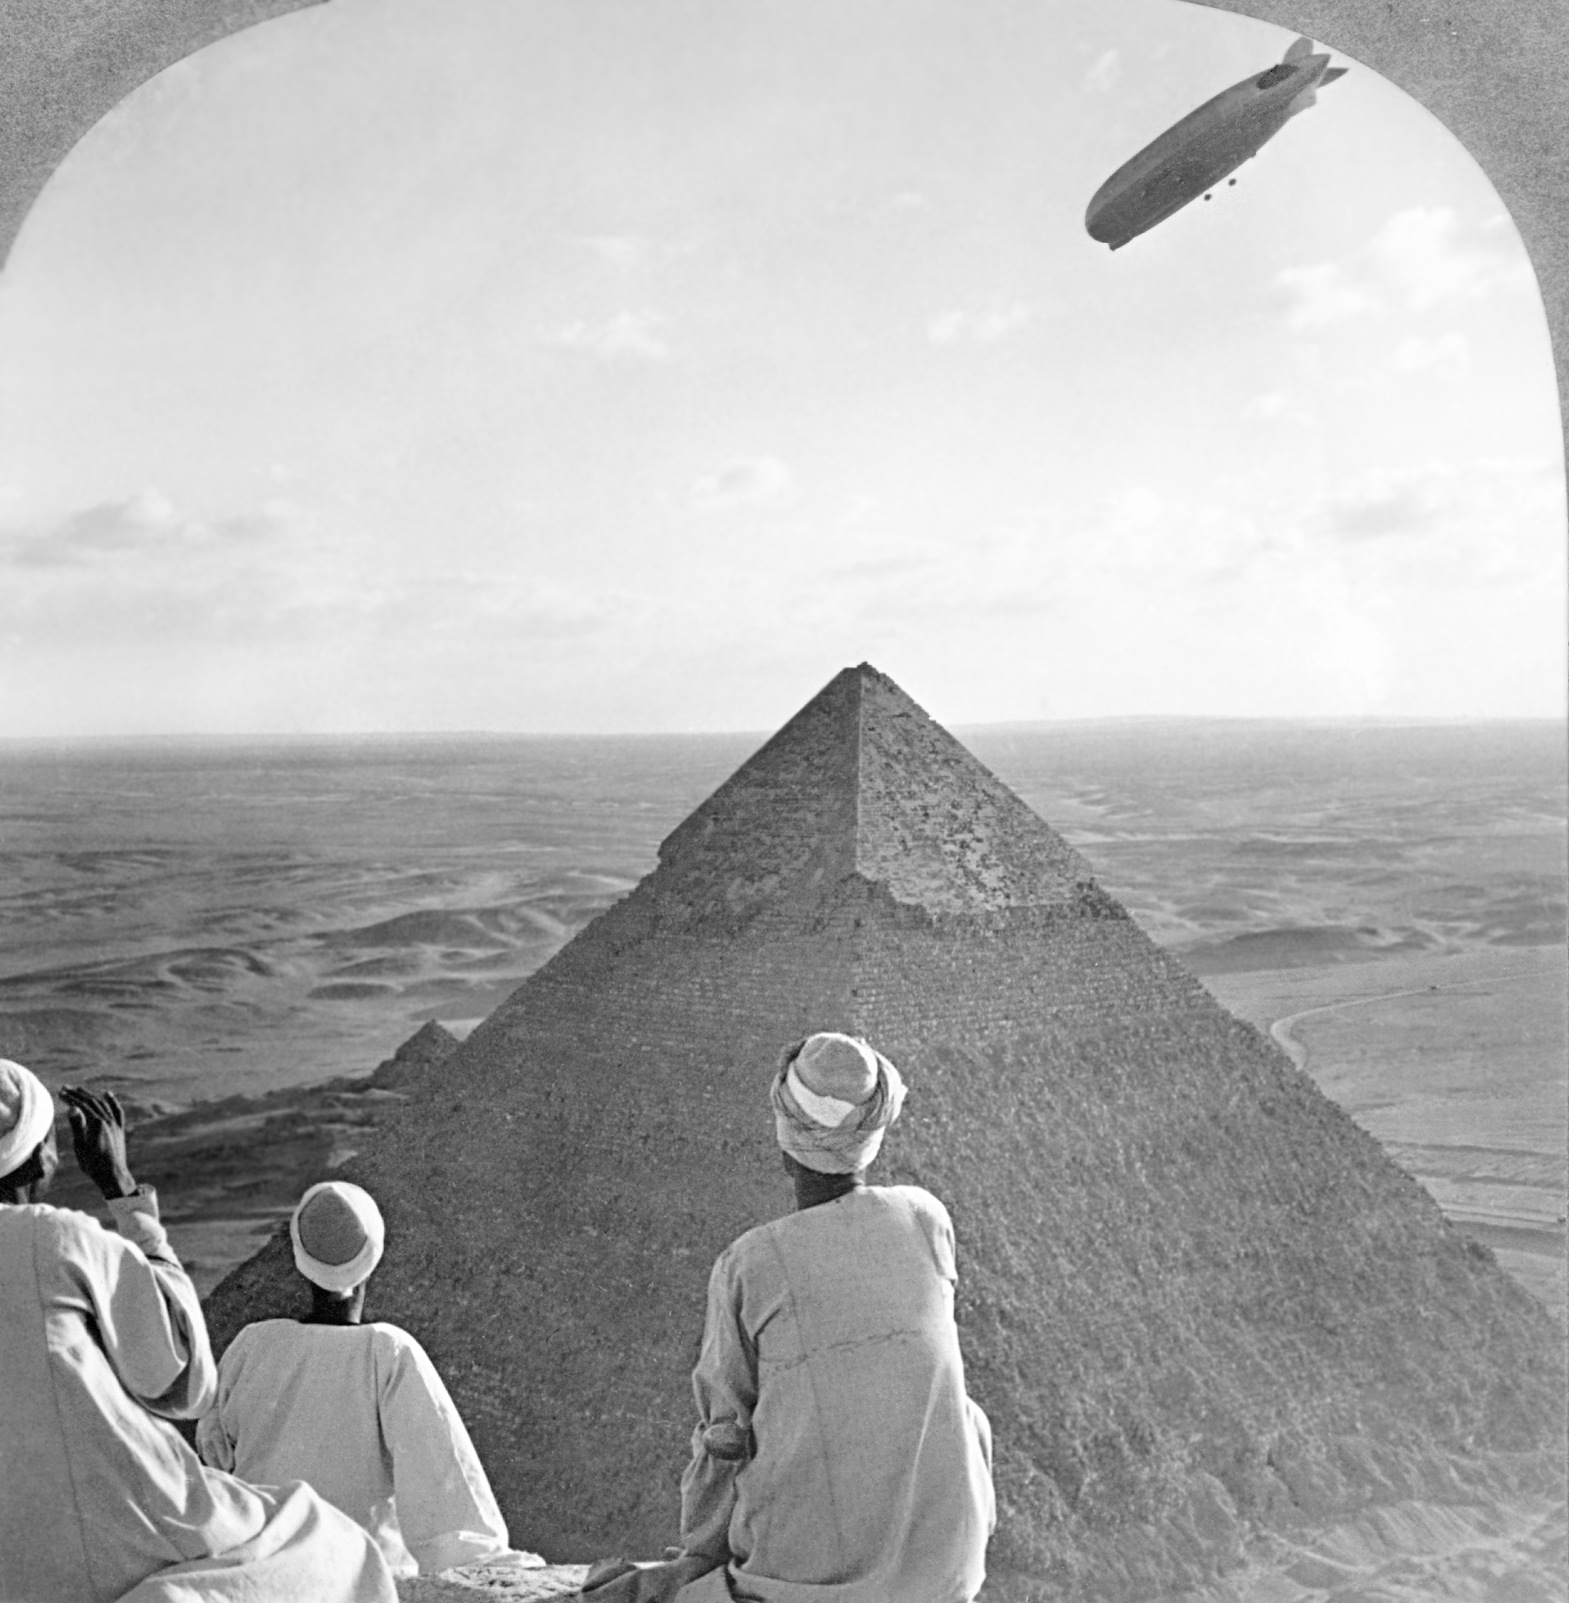 Graf_Zeppelin_over_Pyramid2